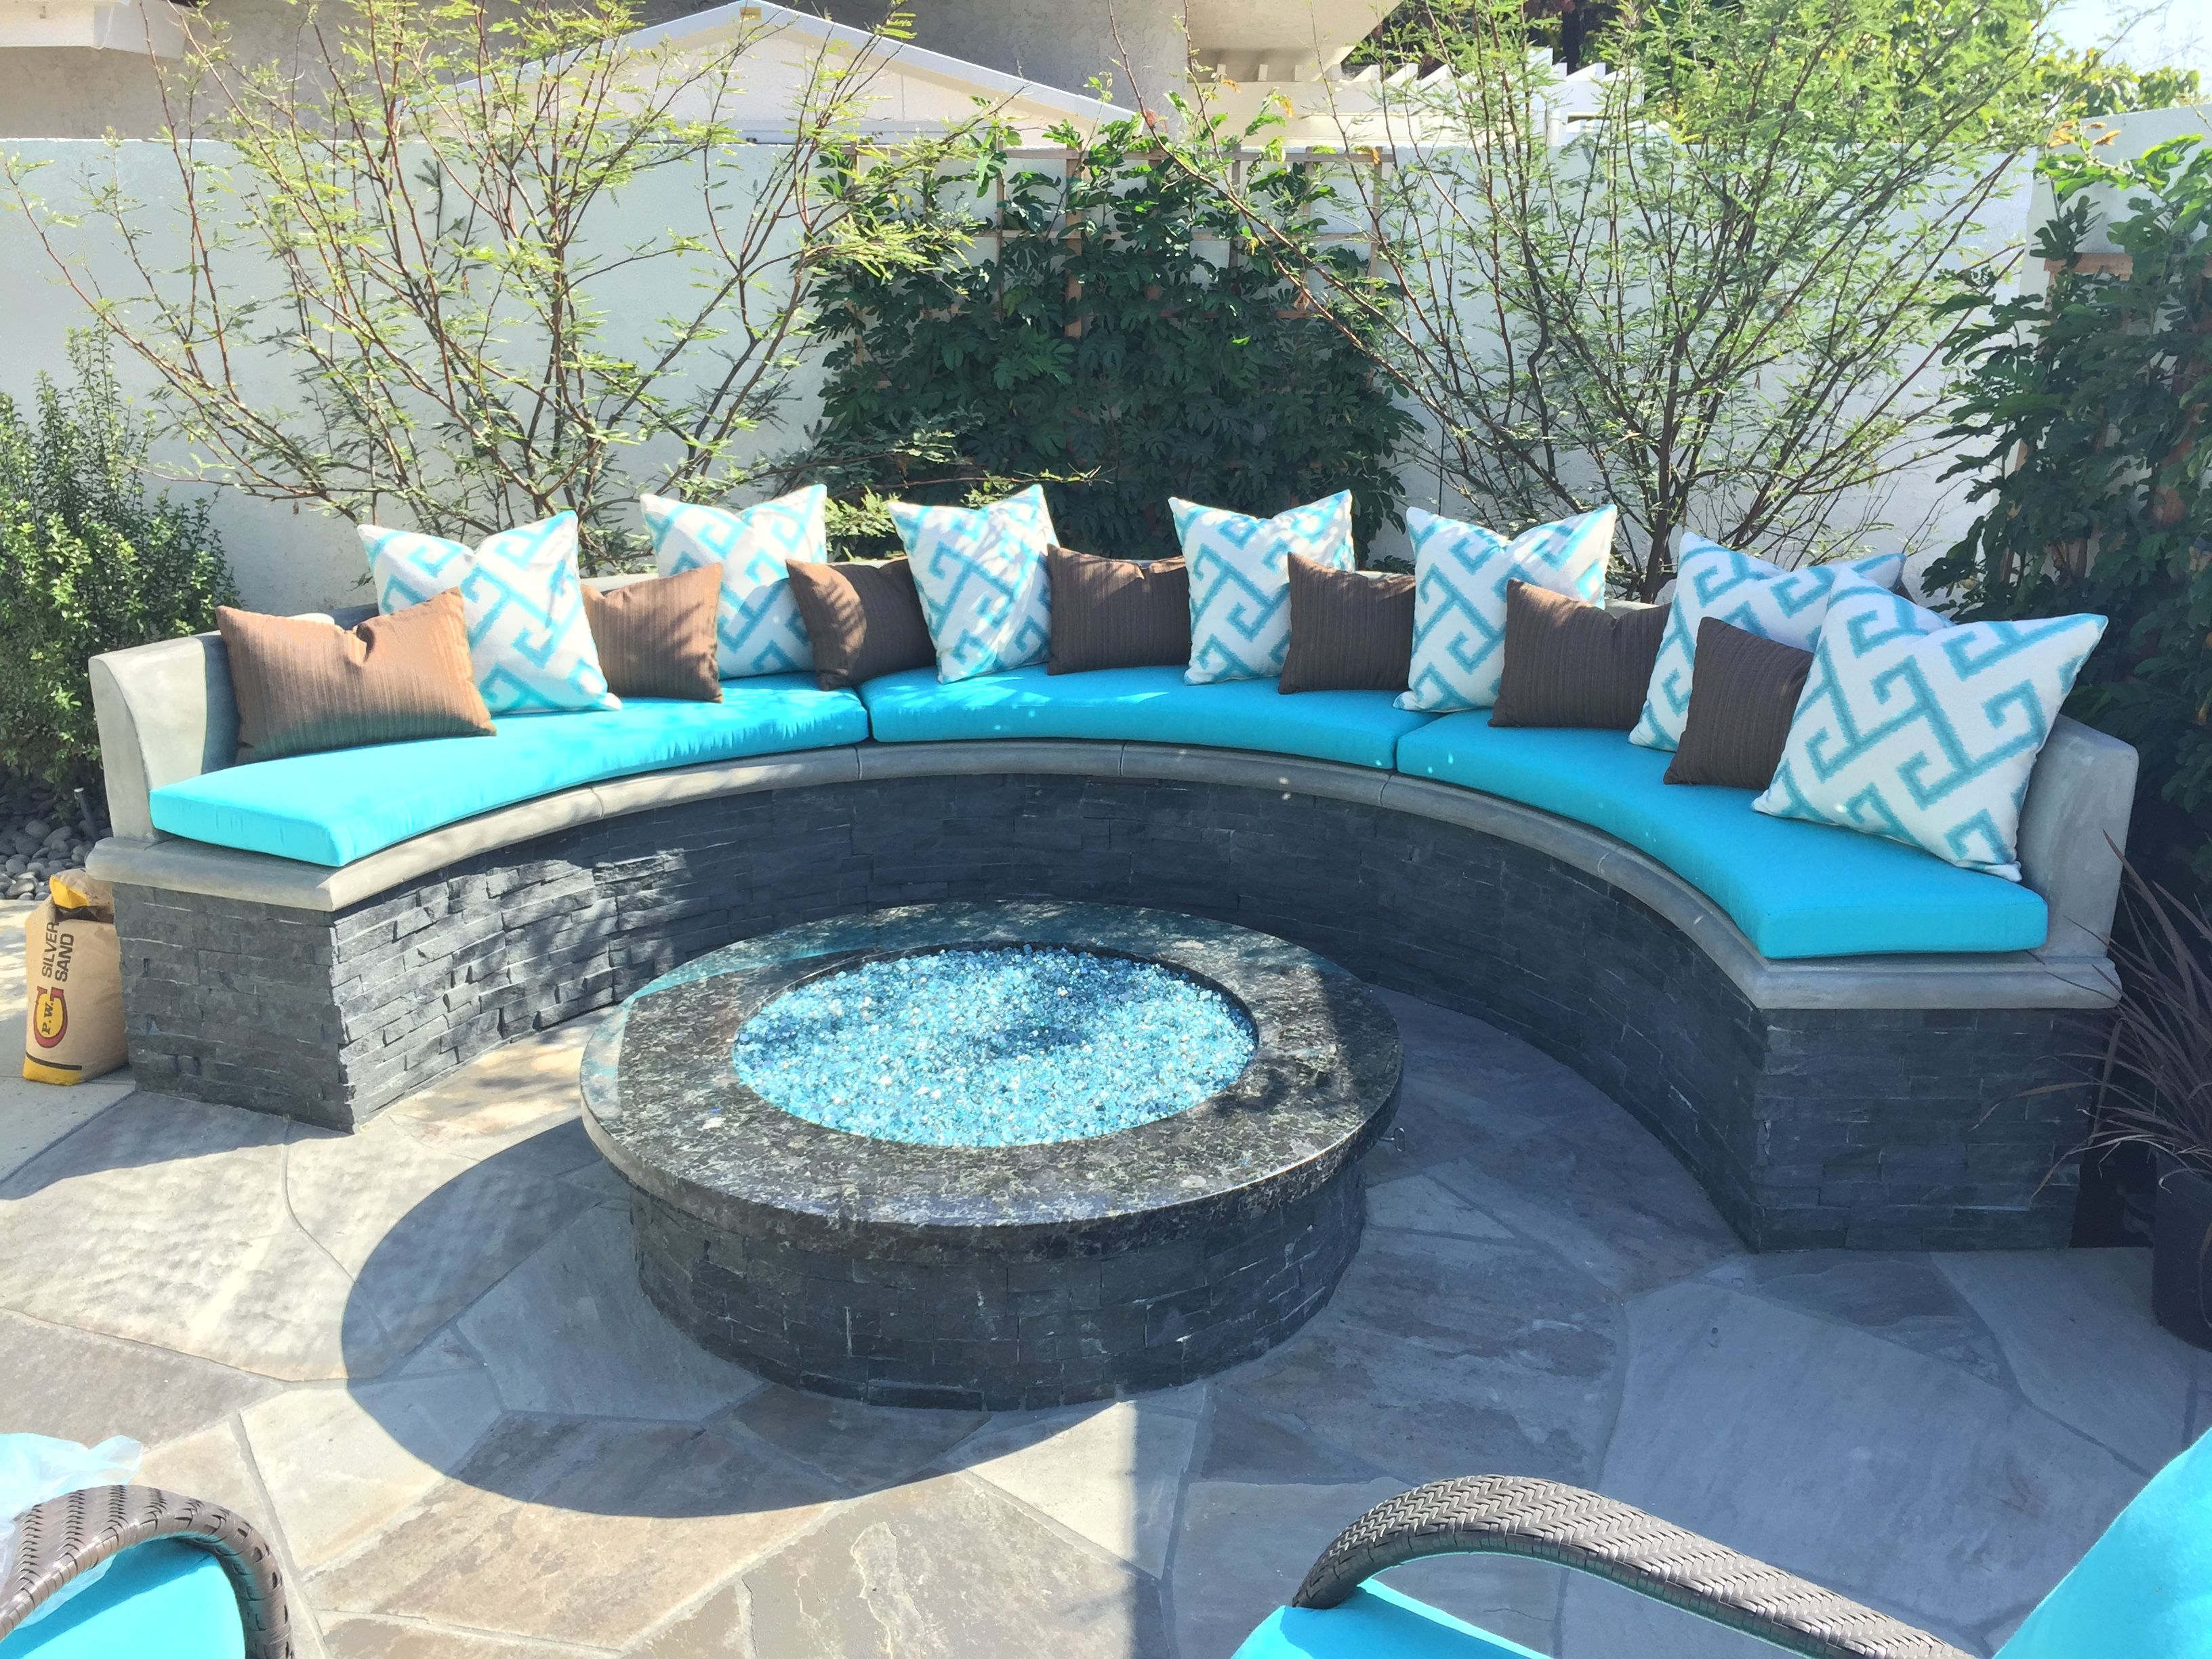 Curved Outdoor Cushions Made By Decorama Backyard Patio Designs Patio Design Fire Pit Backyard